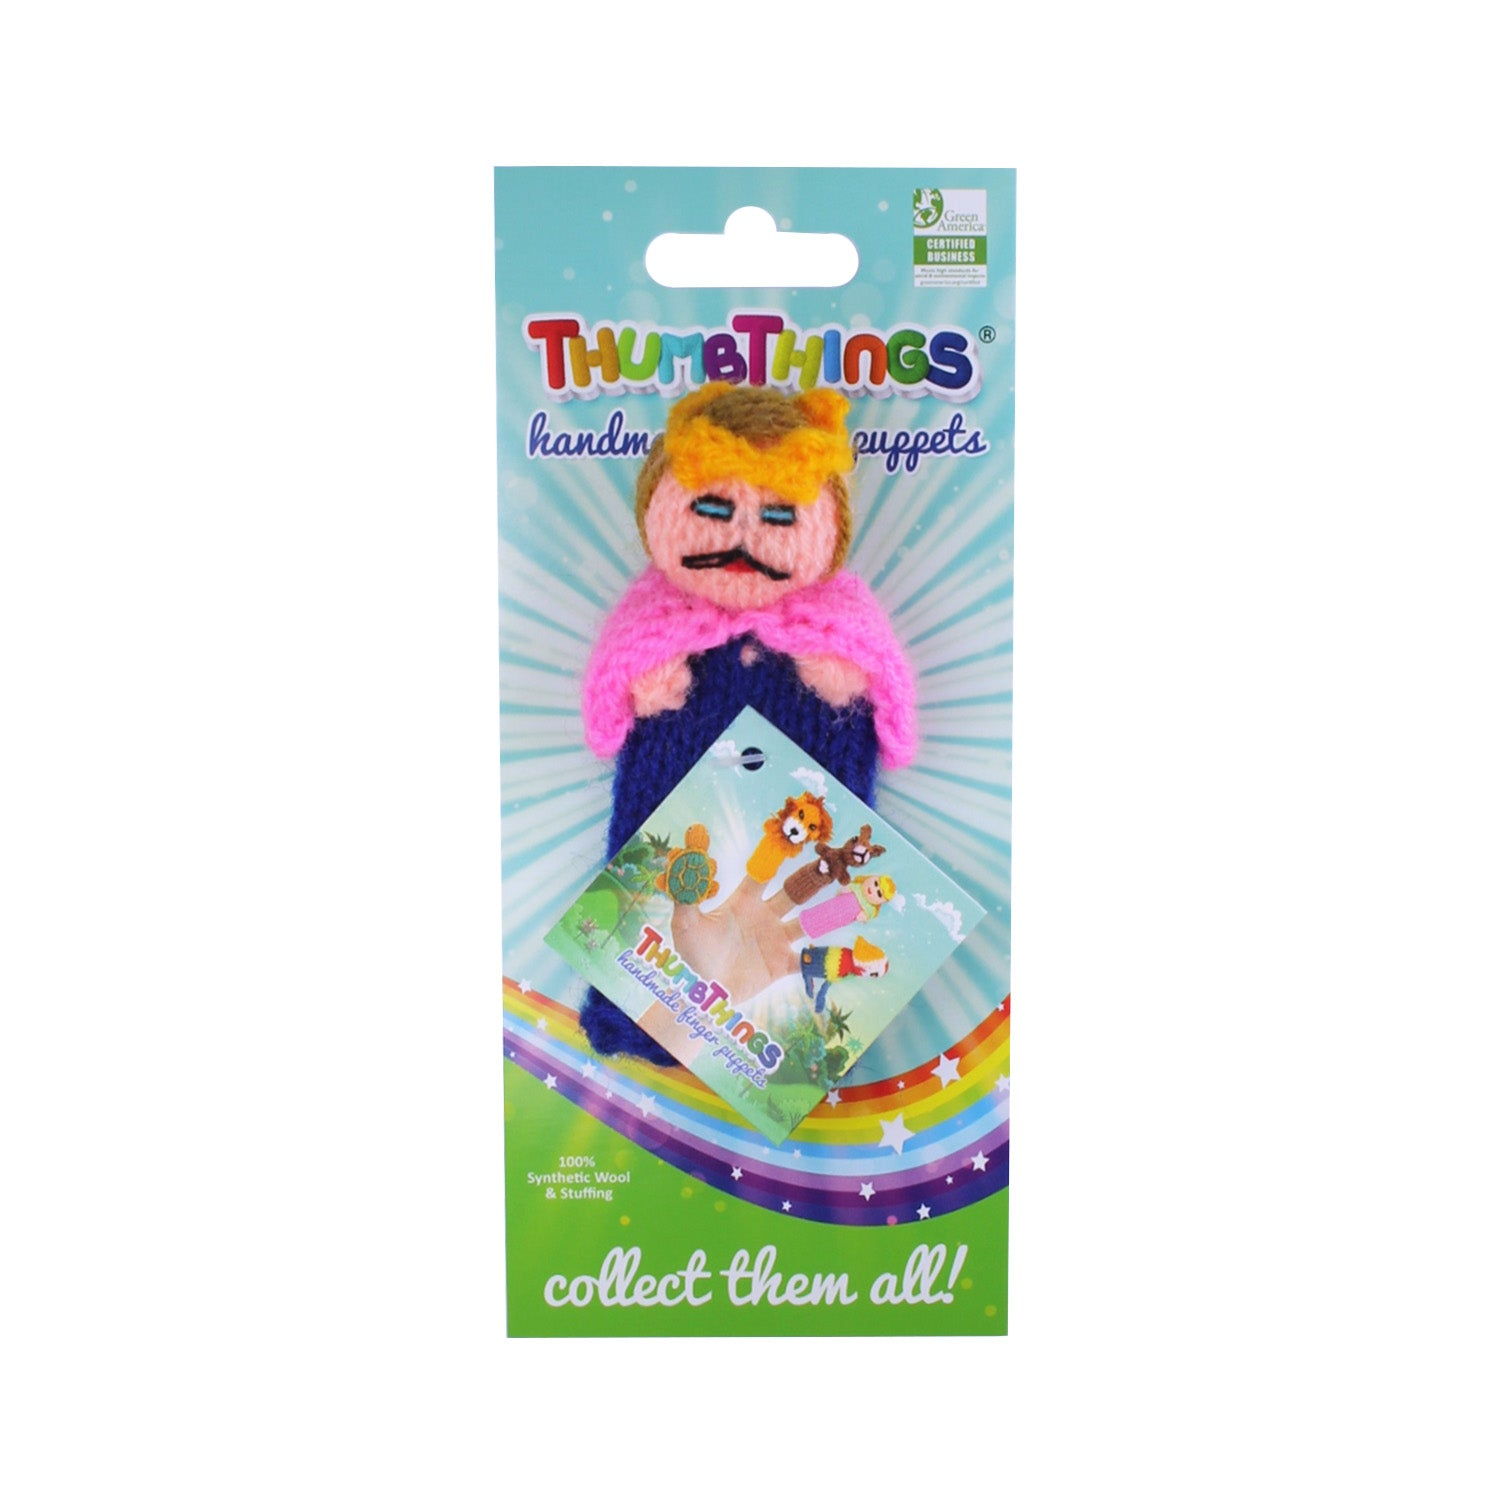 prince finger puppet by thumbthings handmade finger puppets